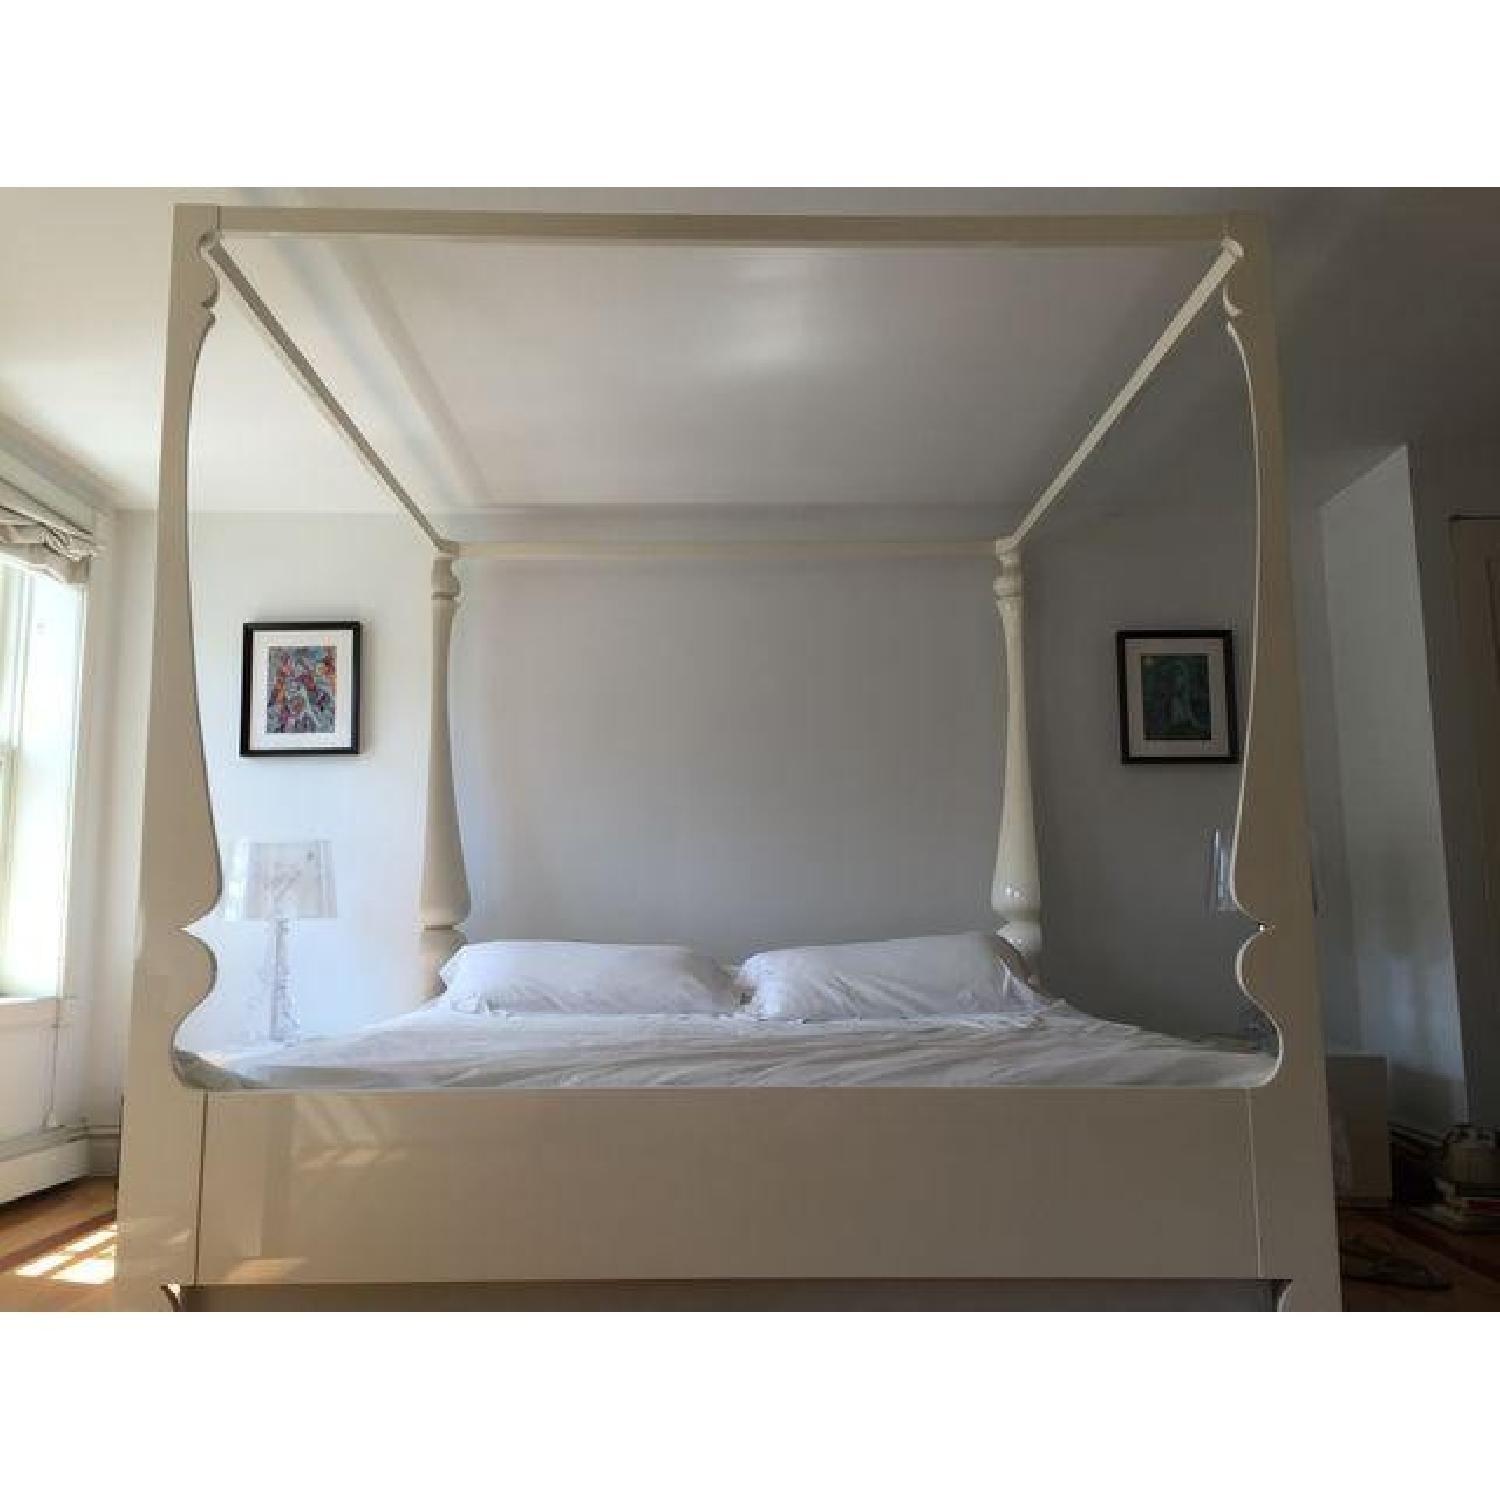 ABC Carpet and Home Louis Four Poster King Bed - image-9